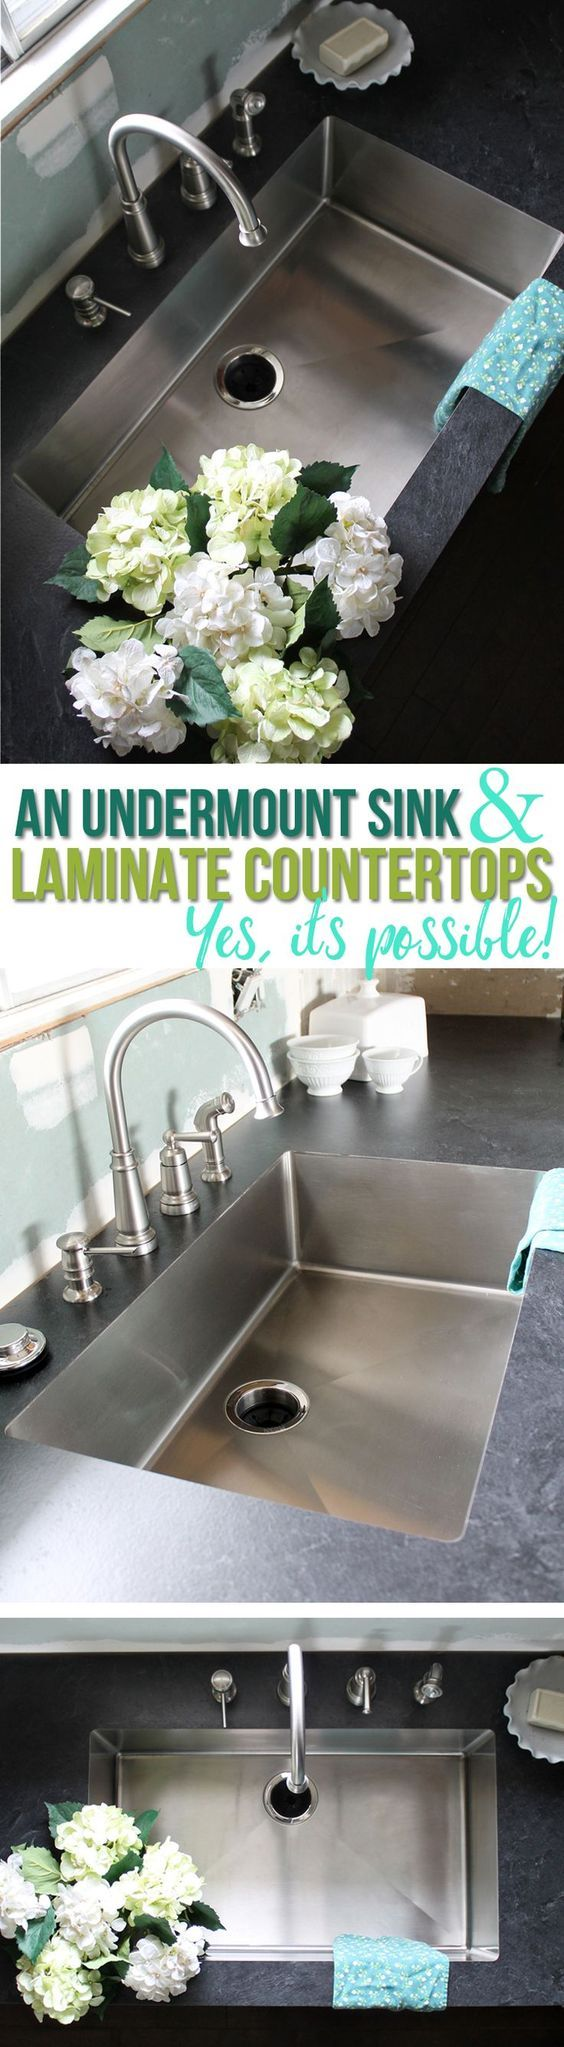 Beautiful undermount stainless steel sinks with Formica® Laminate! It's possible!